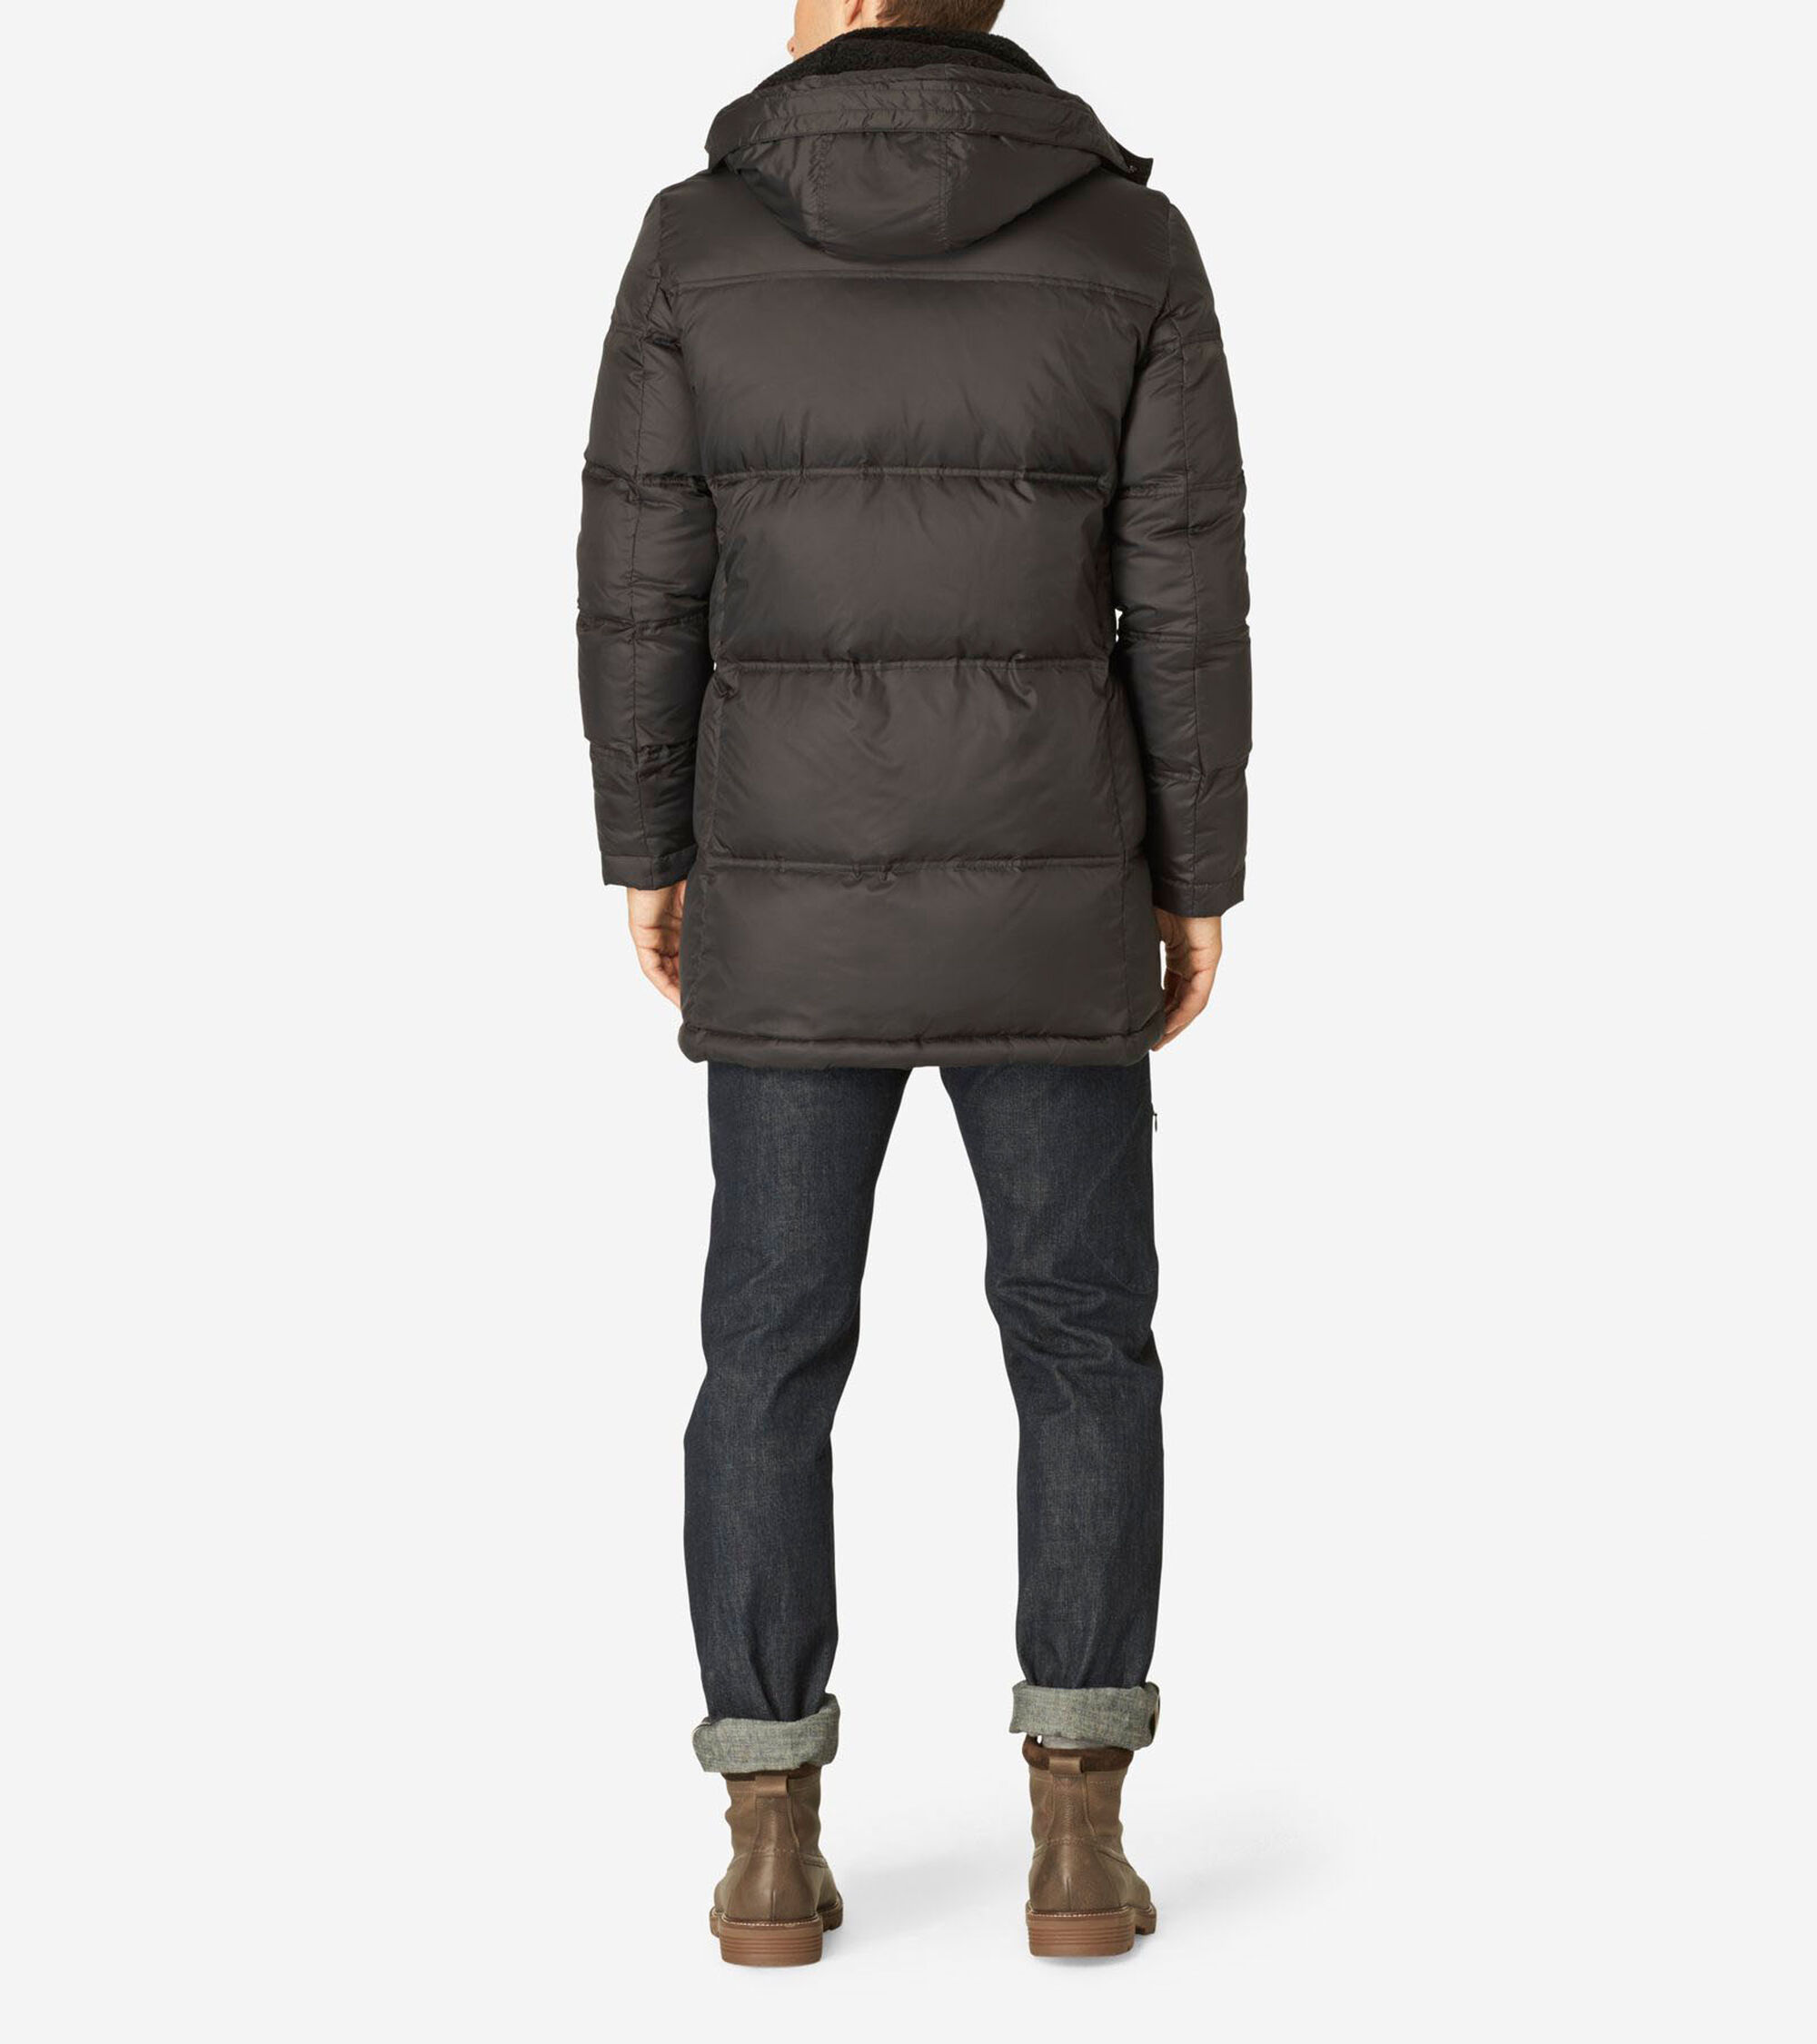 Men's Hood Quilted Down Jacket in Black | Cole Haan Outlet : quilted down jacket mens - Adamdwight.com